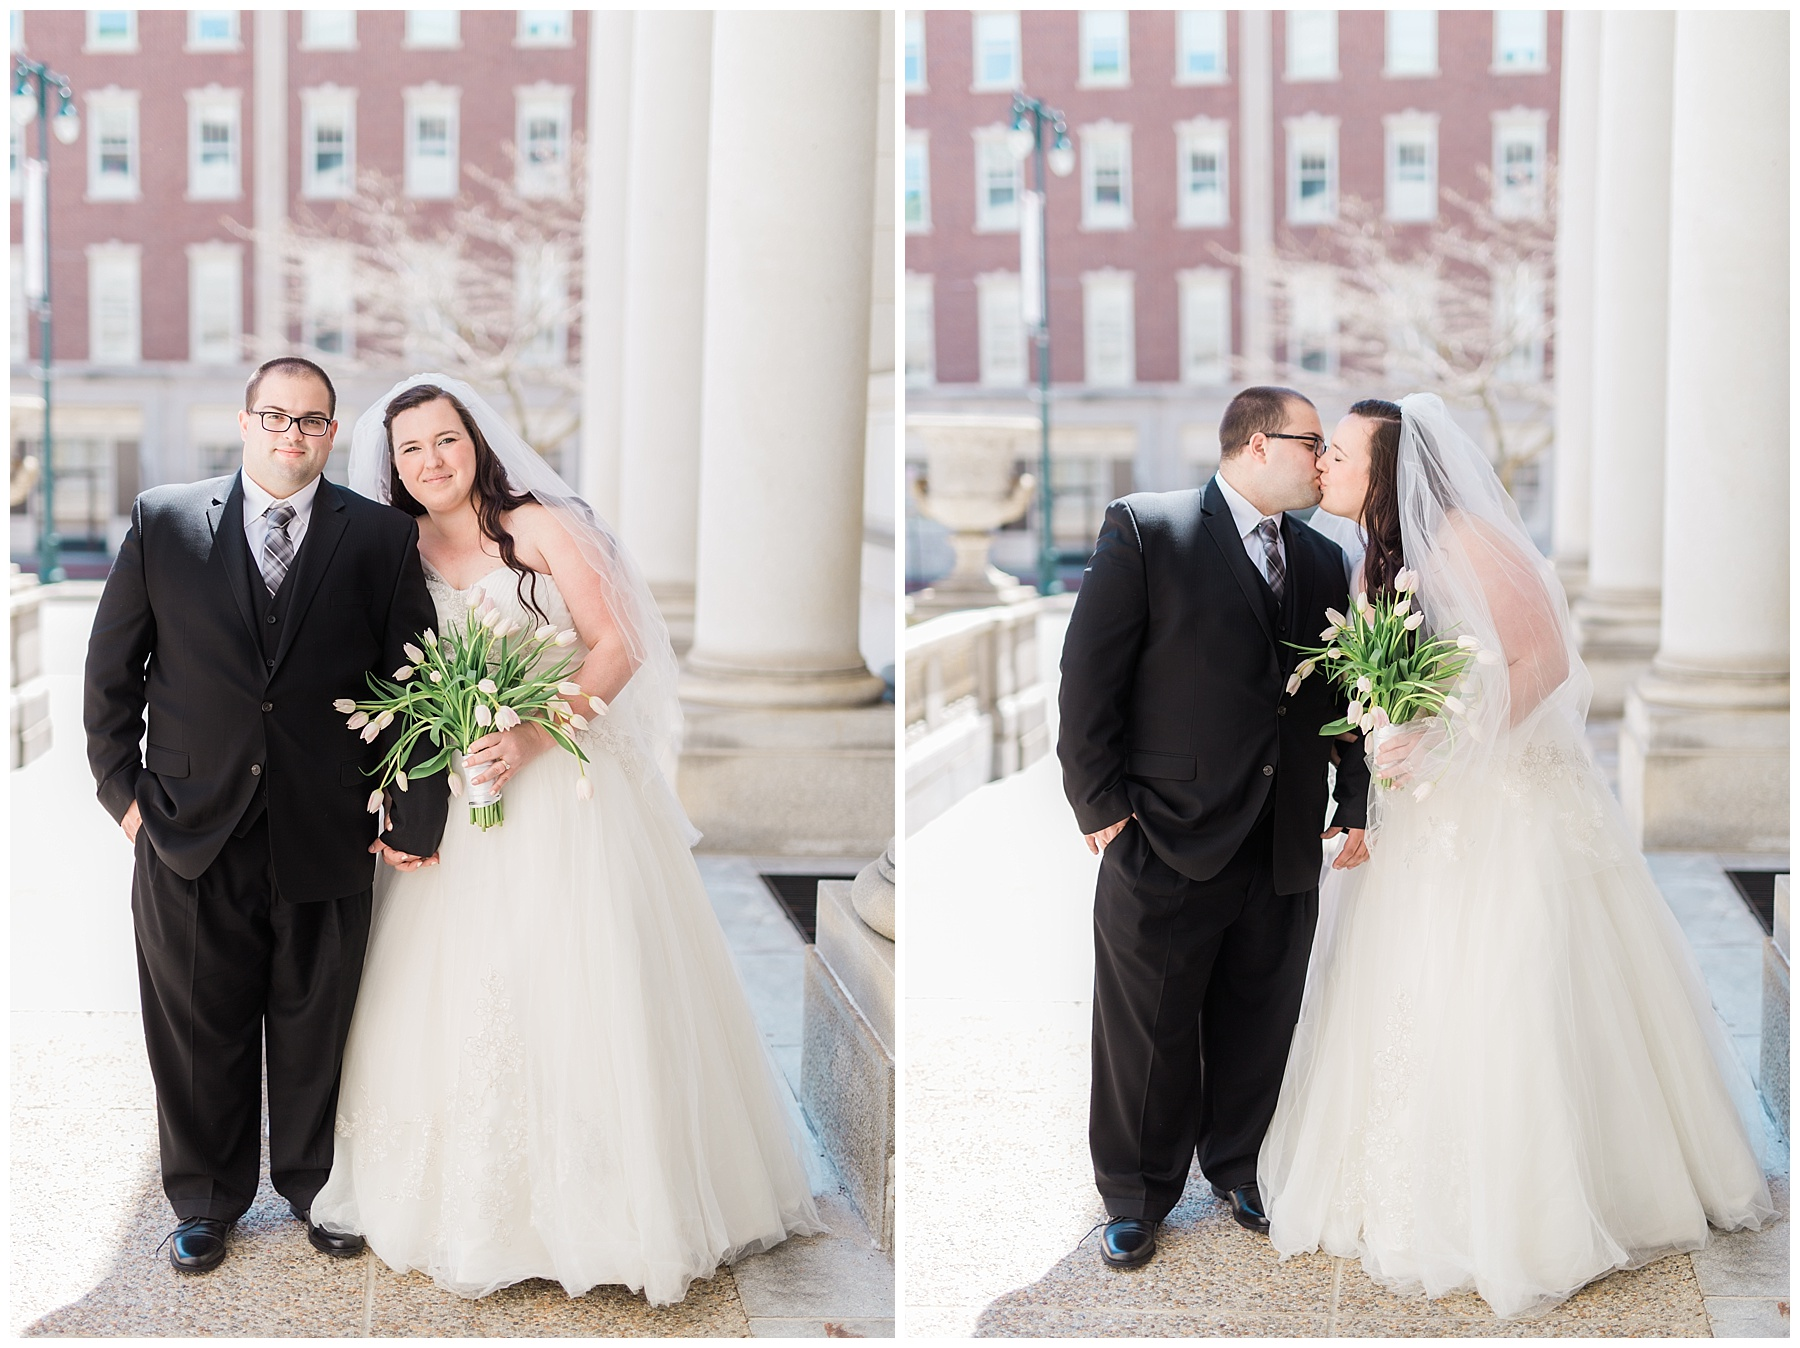 plus size couple in wedding attire taking wedding photos in downtown portland maine at city hall holding tulips